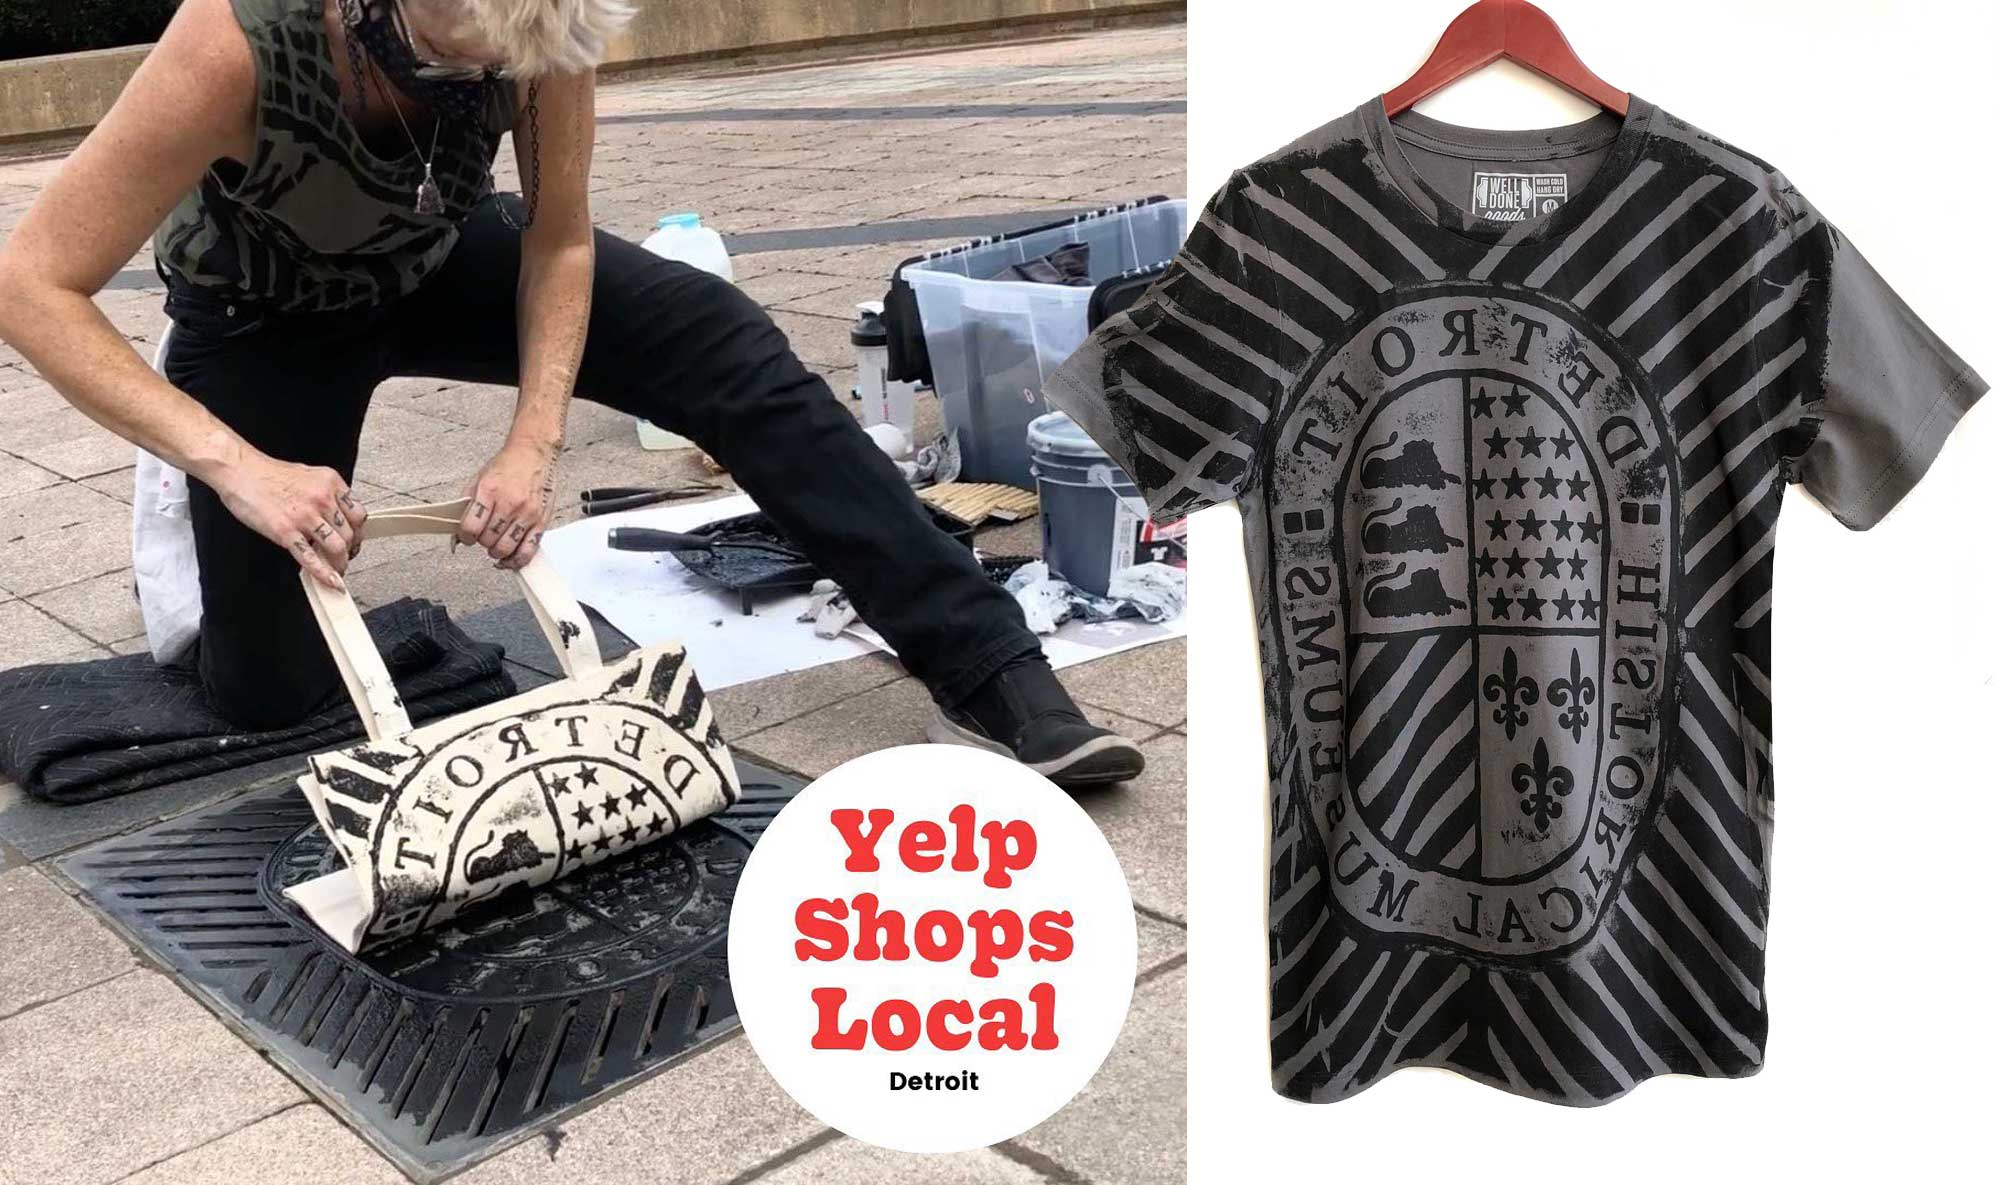 yelp live, manhole printing, well done goods